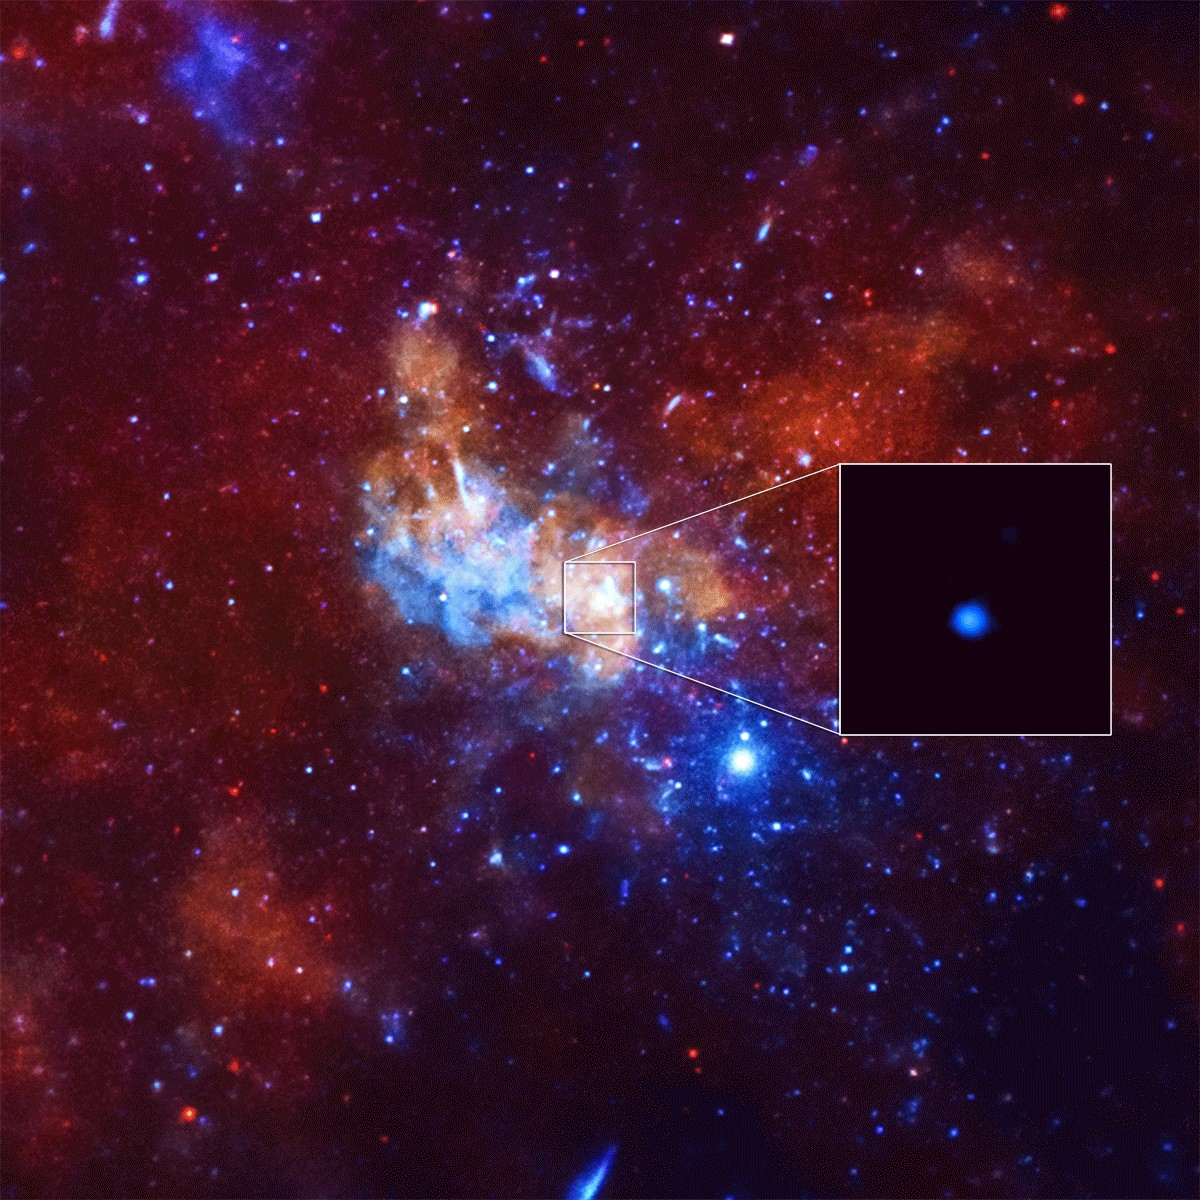 black hole chandra x ray - photo #13